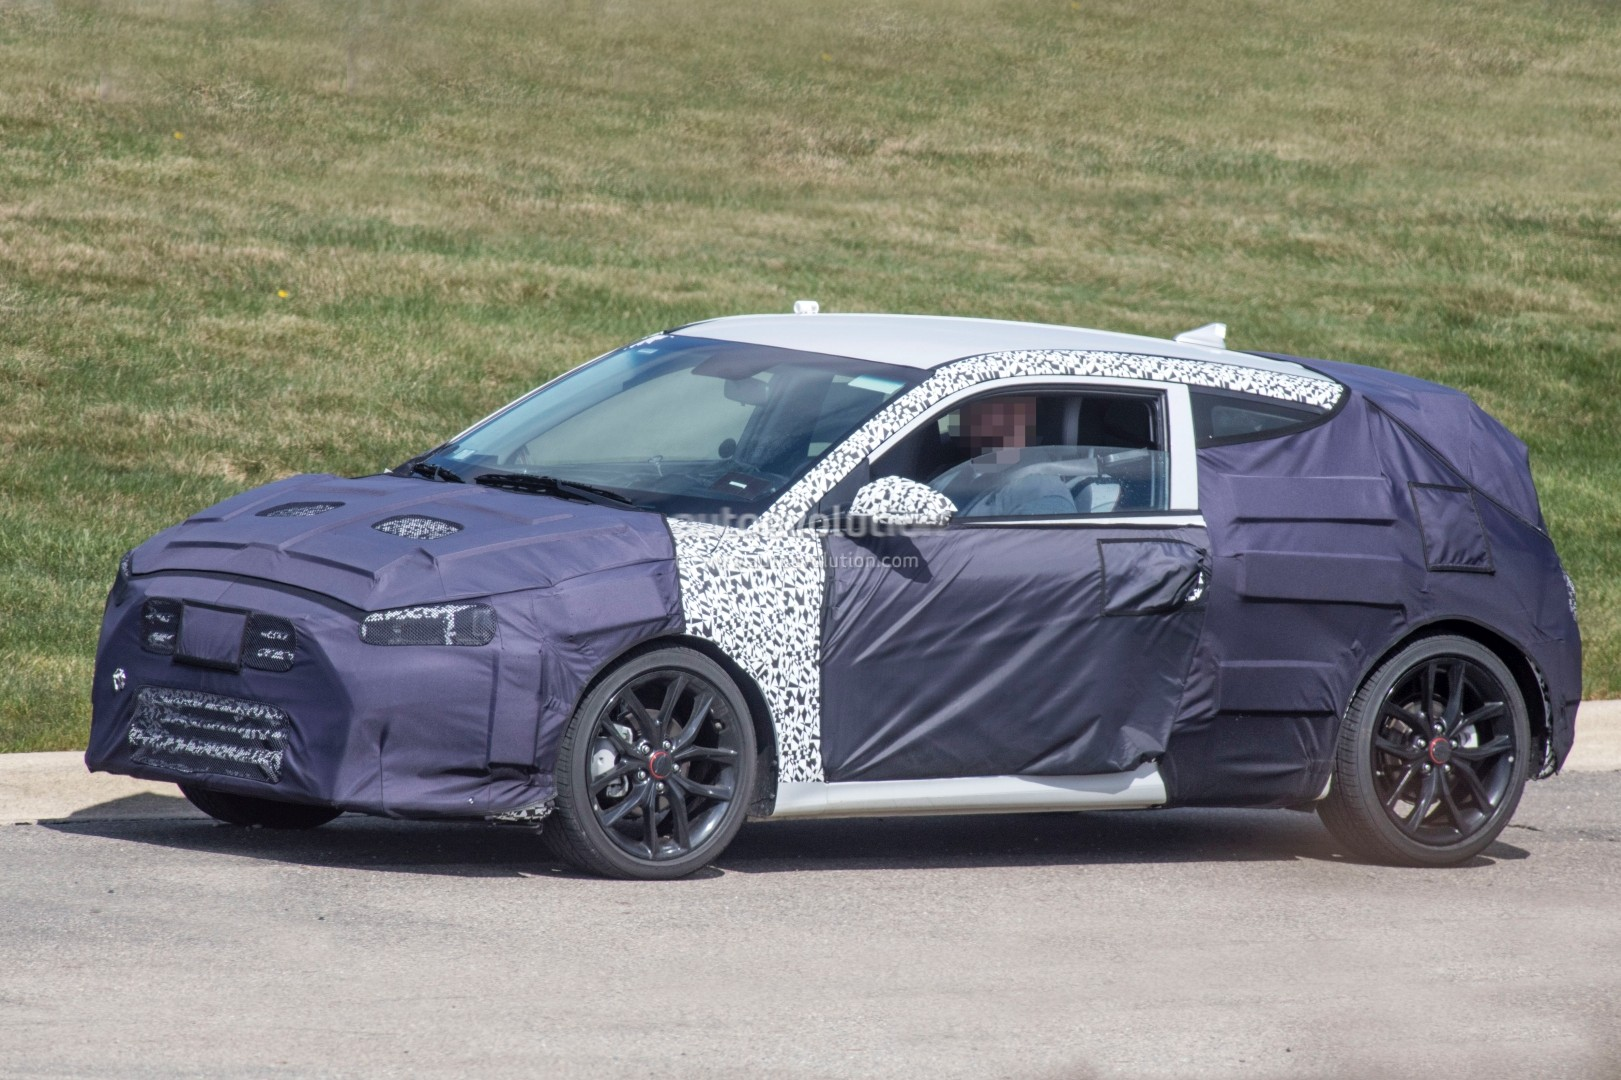 ... 2019 Hyundai Veloster spied ... & Second-Generation Hyundai Veloster Prototype Hides Cleaner Look Odd ...